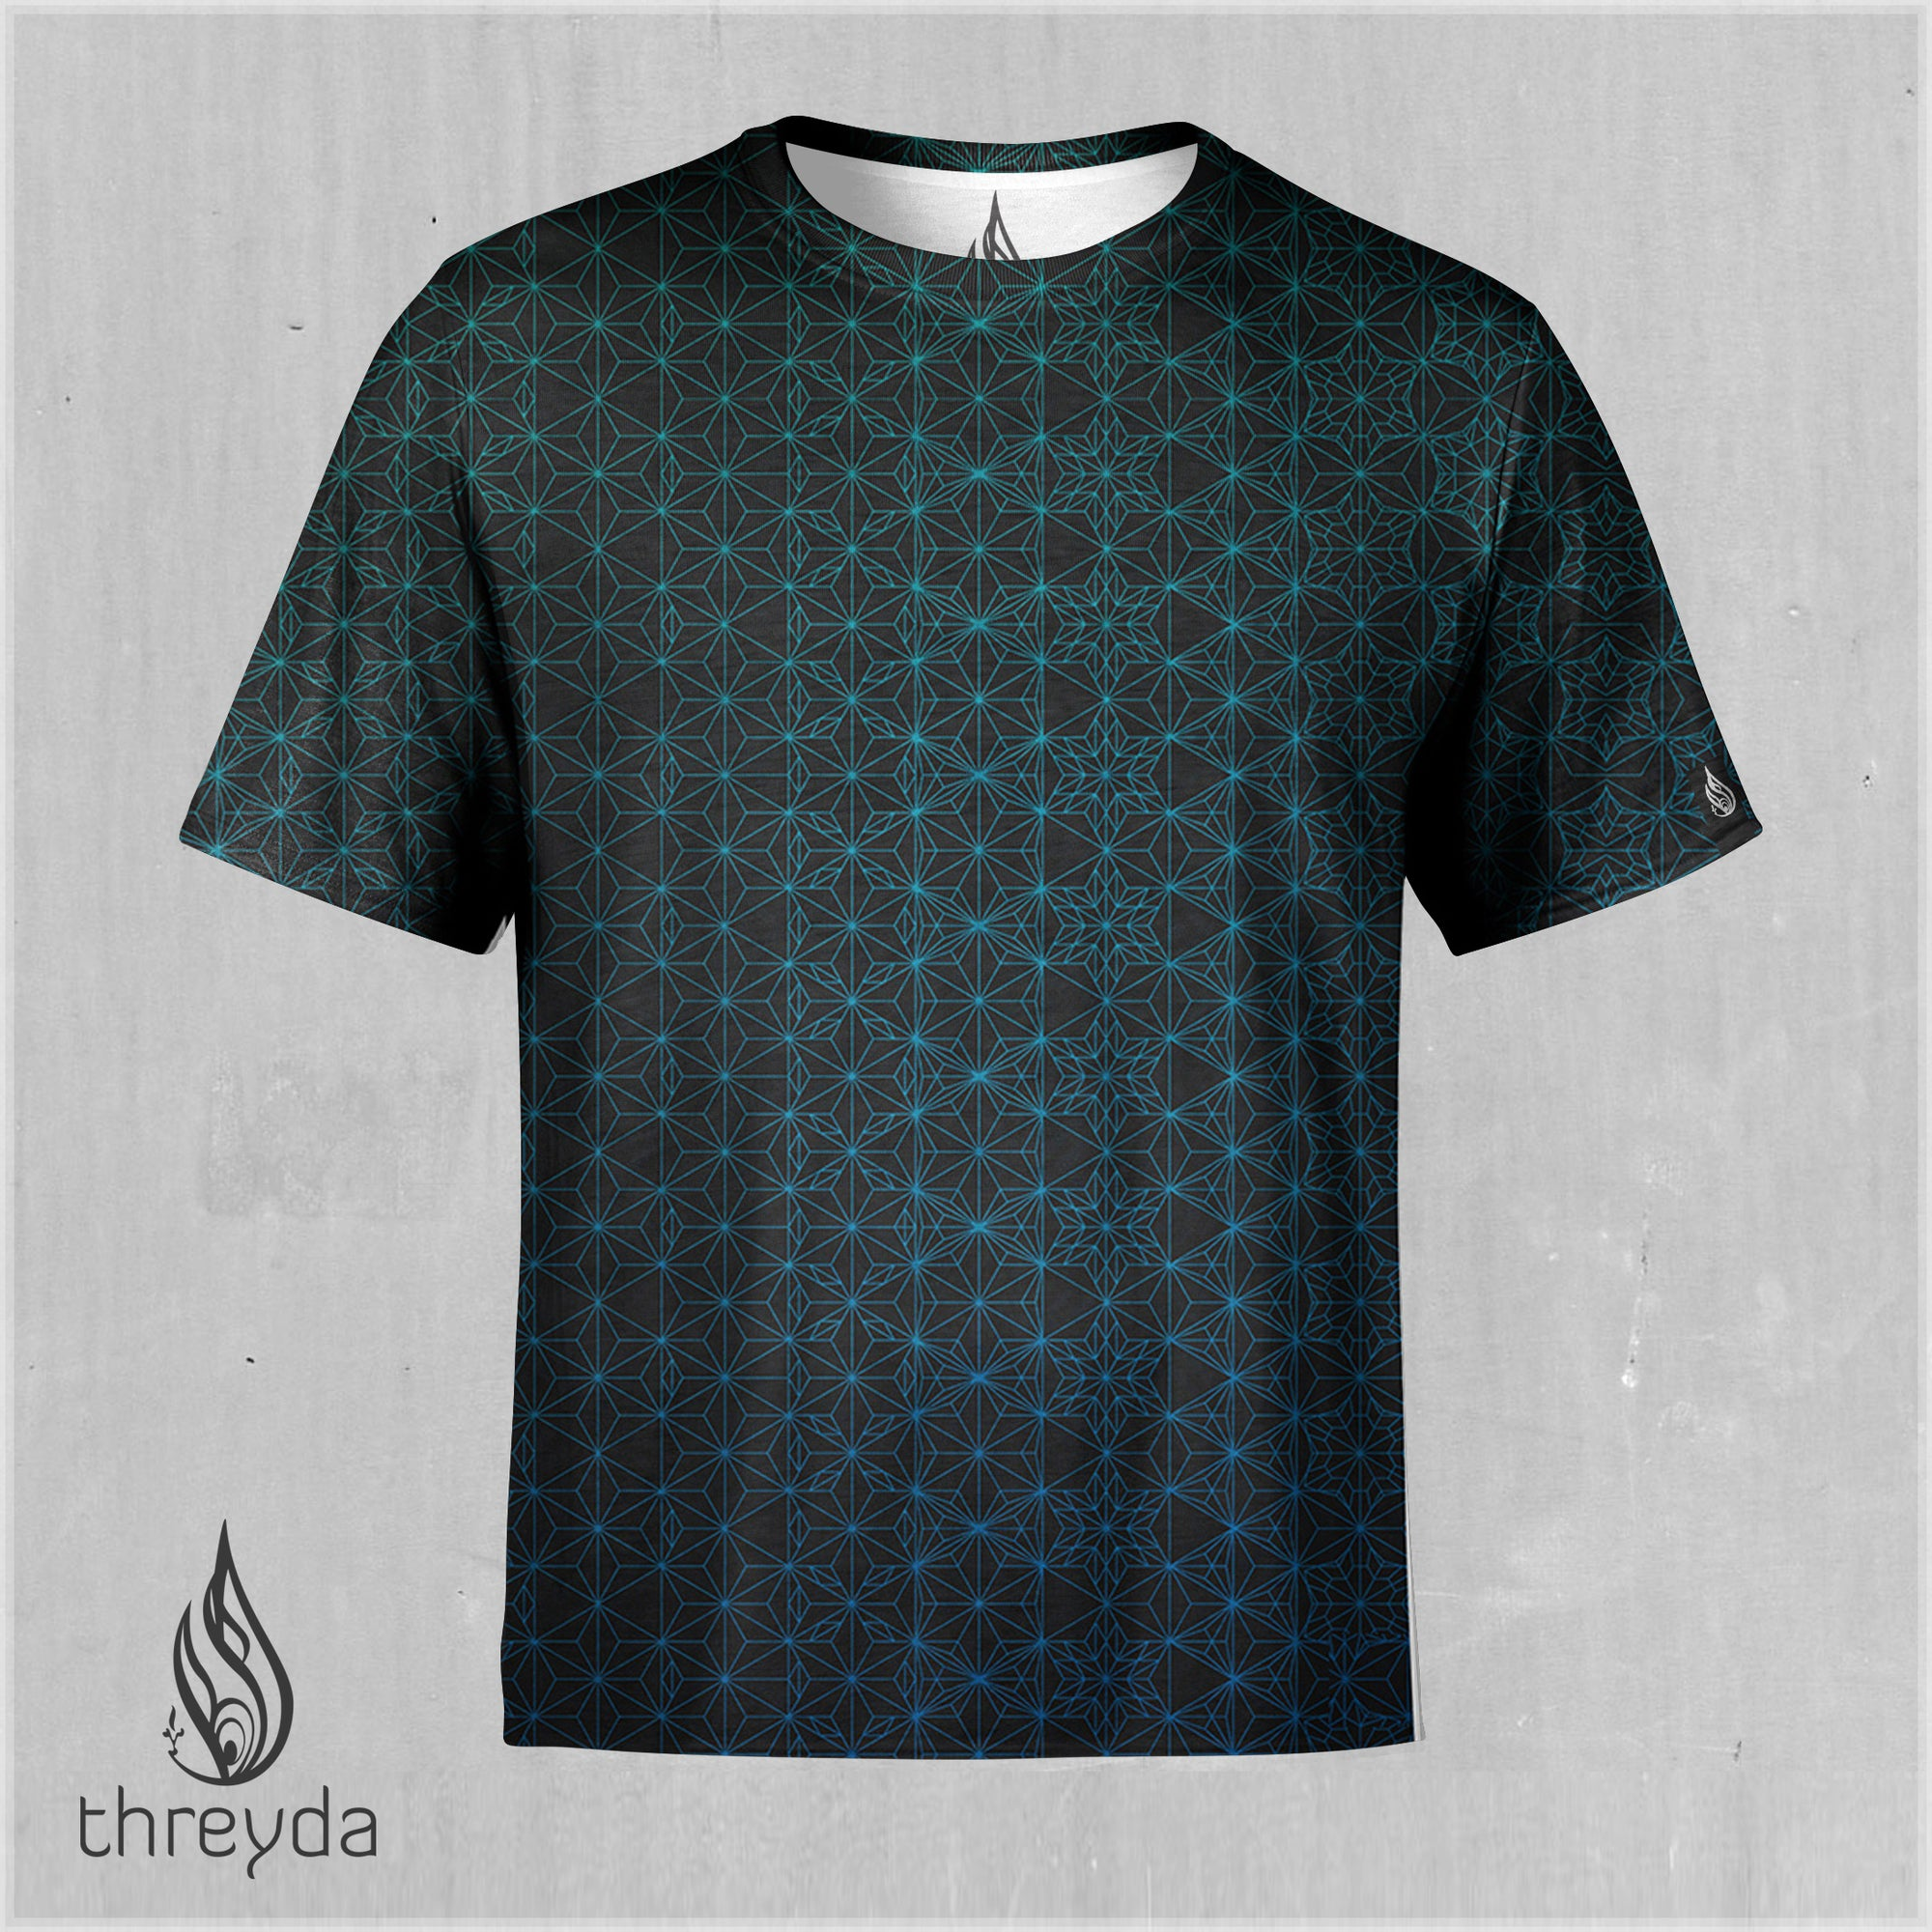 Emerald Starseed Sublimation Tee by Kimi Tamakura - Ships March 2020